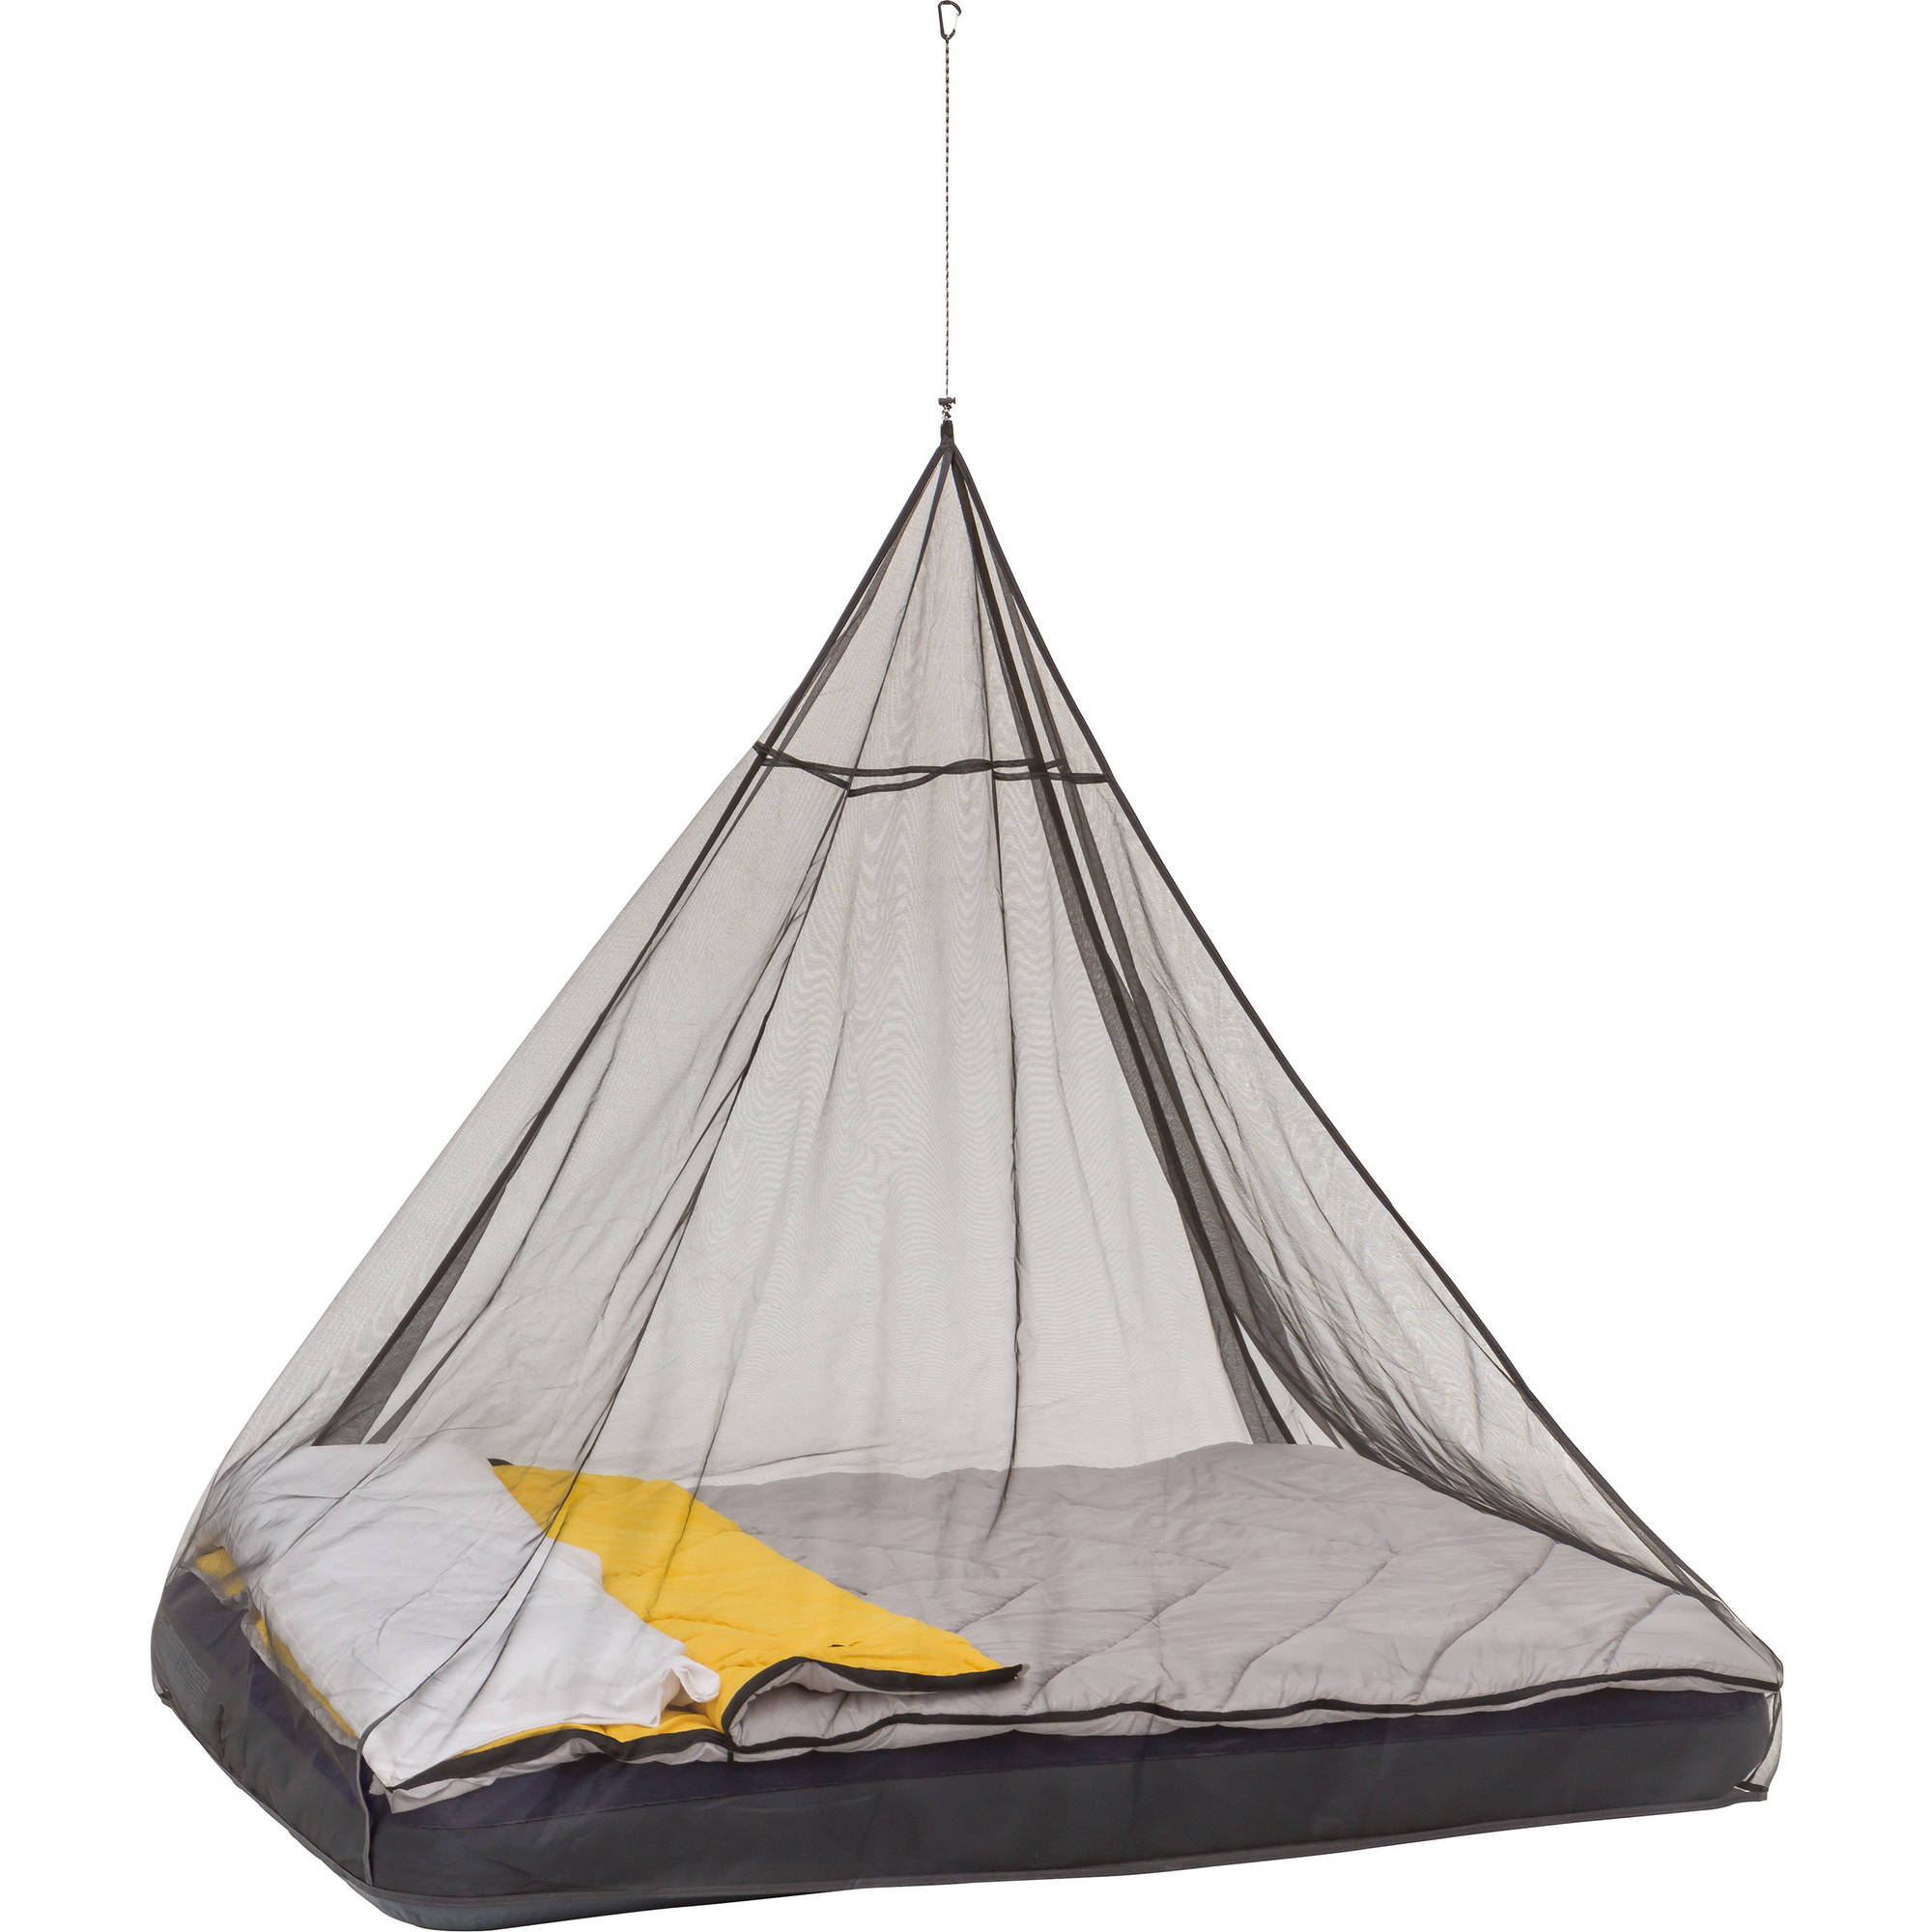 Ozark Trail Mosquito Net, Queen